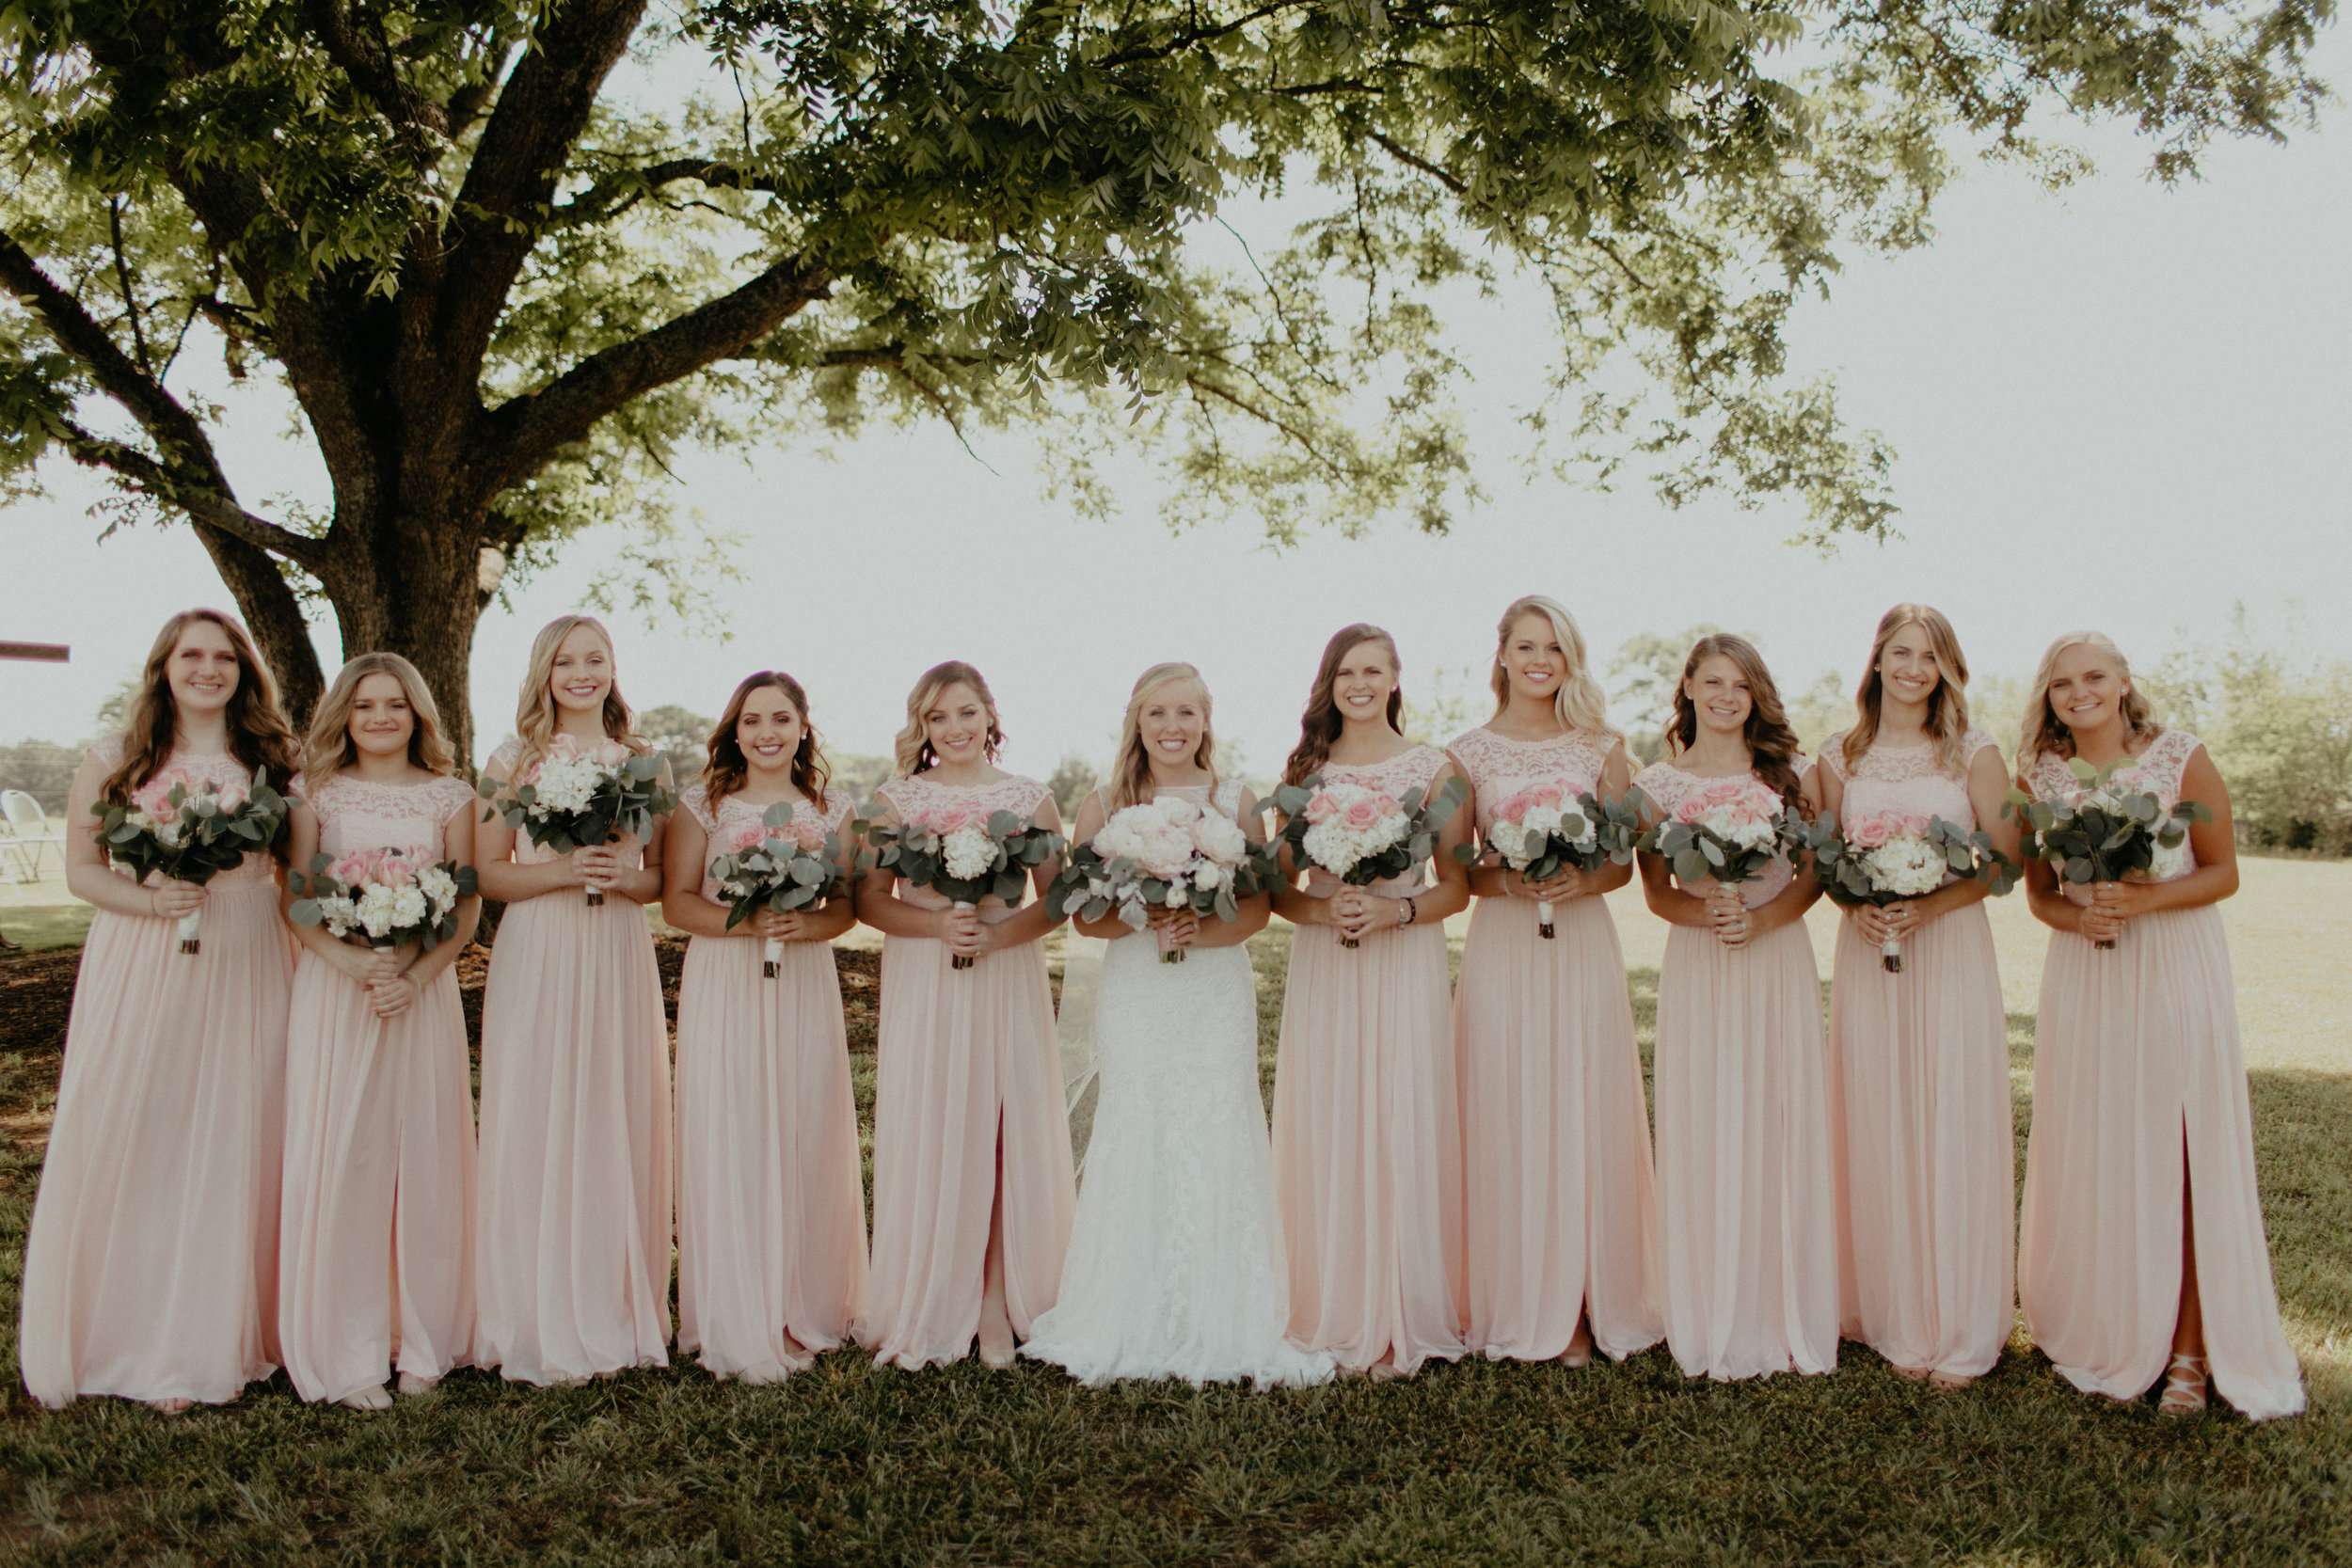 May wedding, photo by Brooke Miller Photography